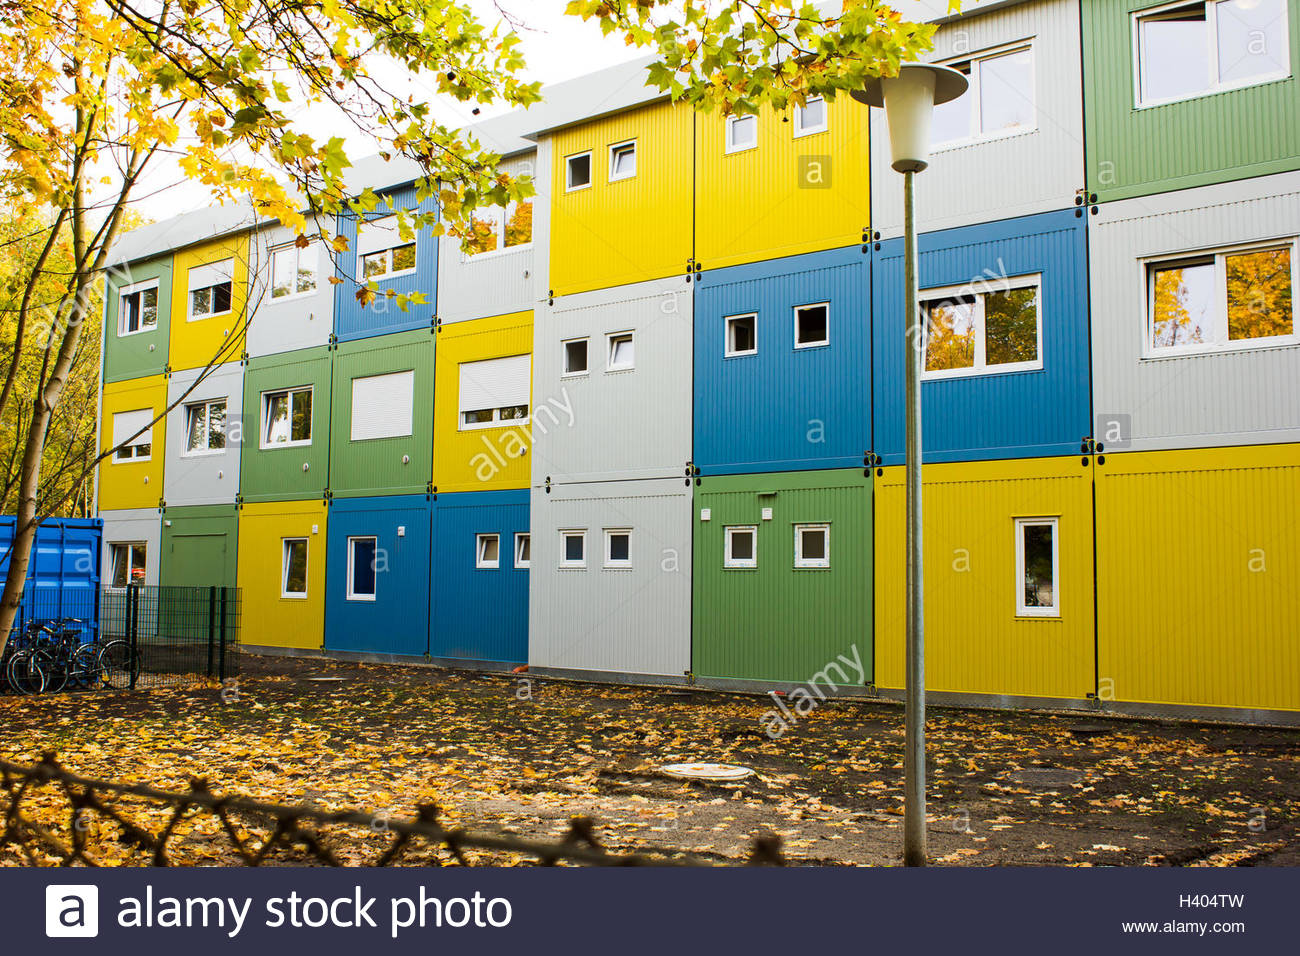 Residential home for refugees in Berlin Germany, mainly syrian and iraq muslims, refugee crisis and immigration - Stock Image